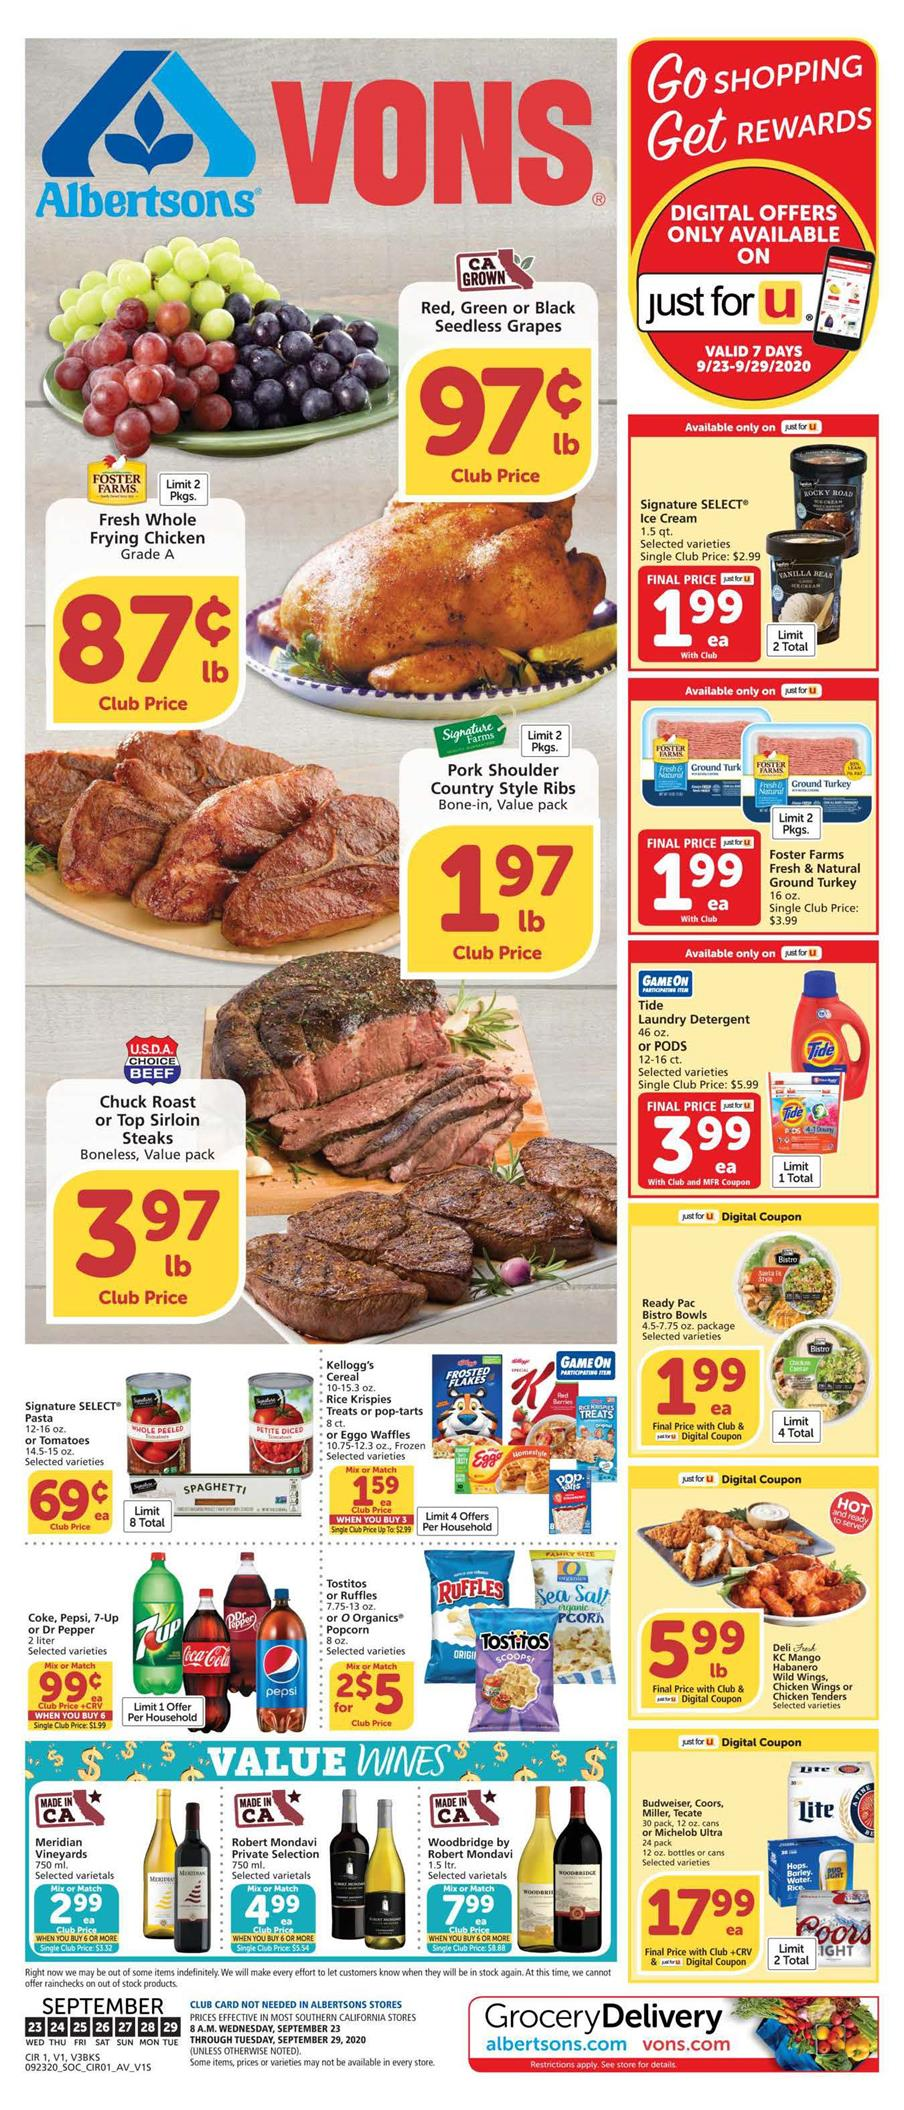 vons weekly ad sep 23 2020